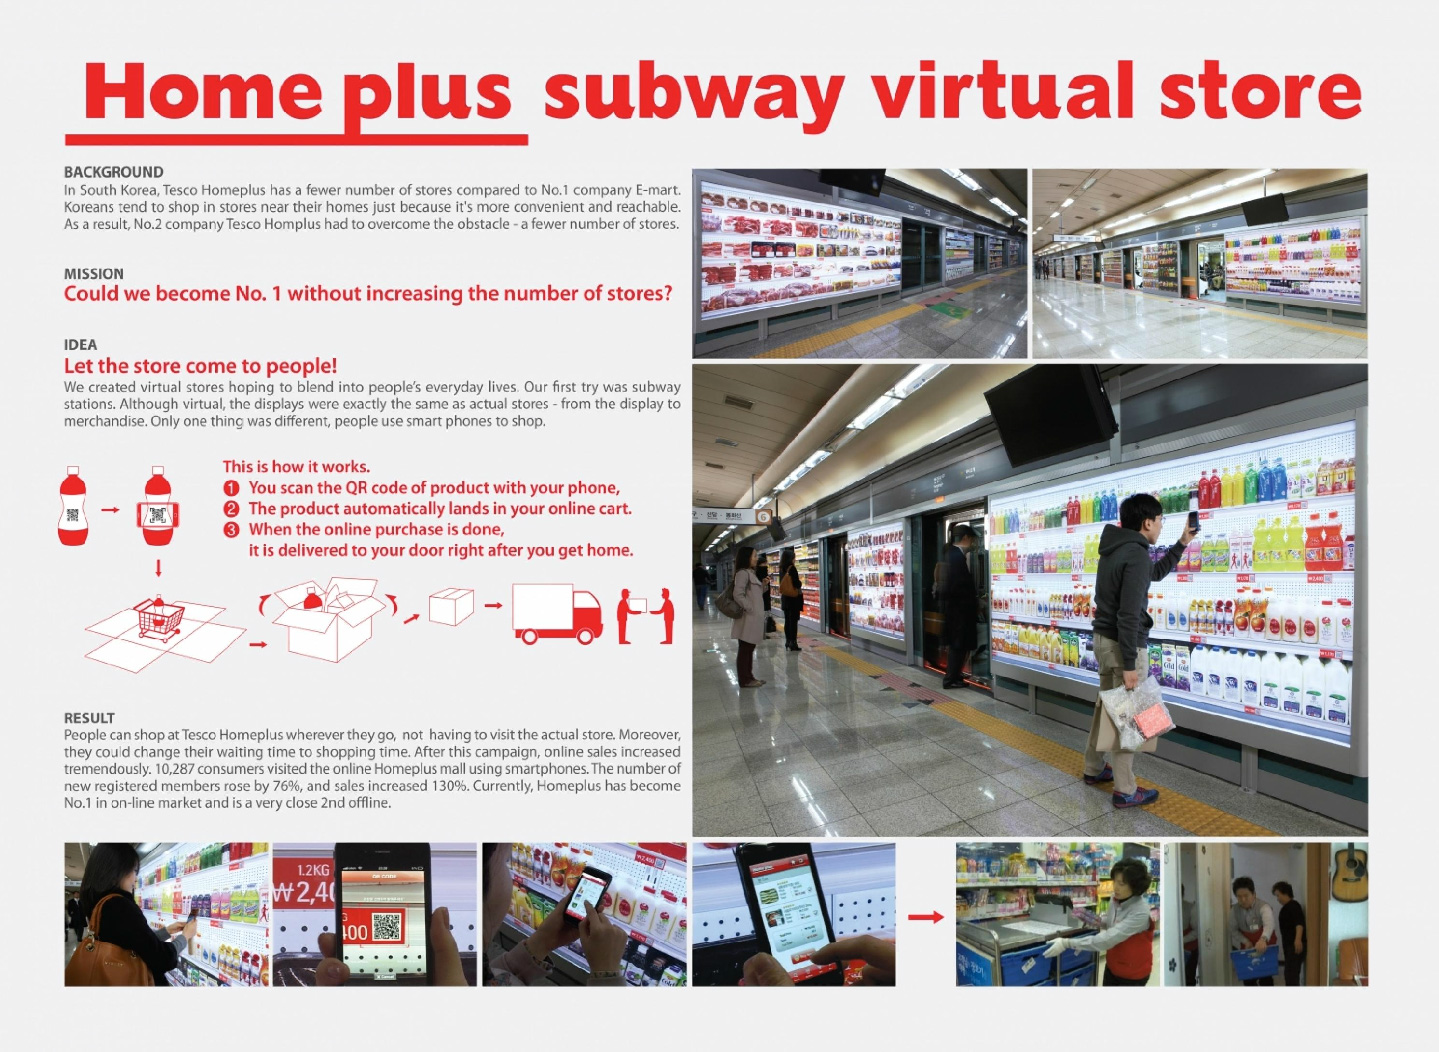 Home plus creates a virtual store on a wall for mobile users in South Korea